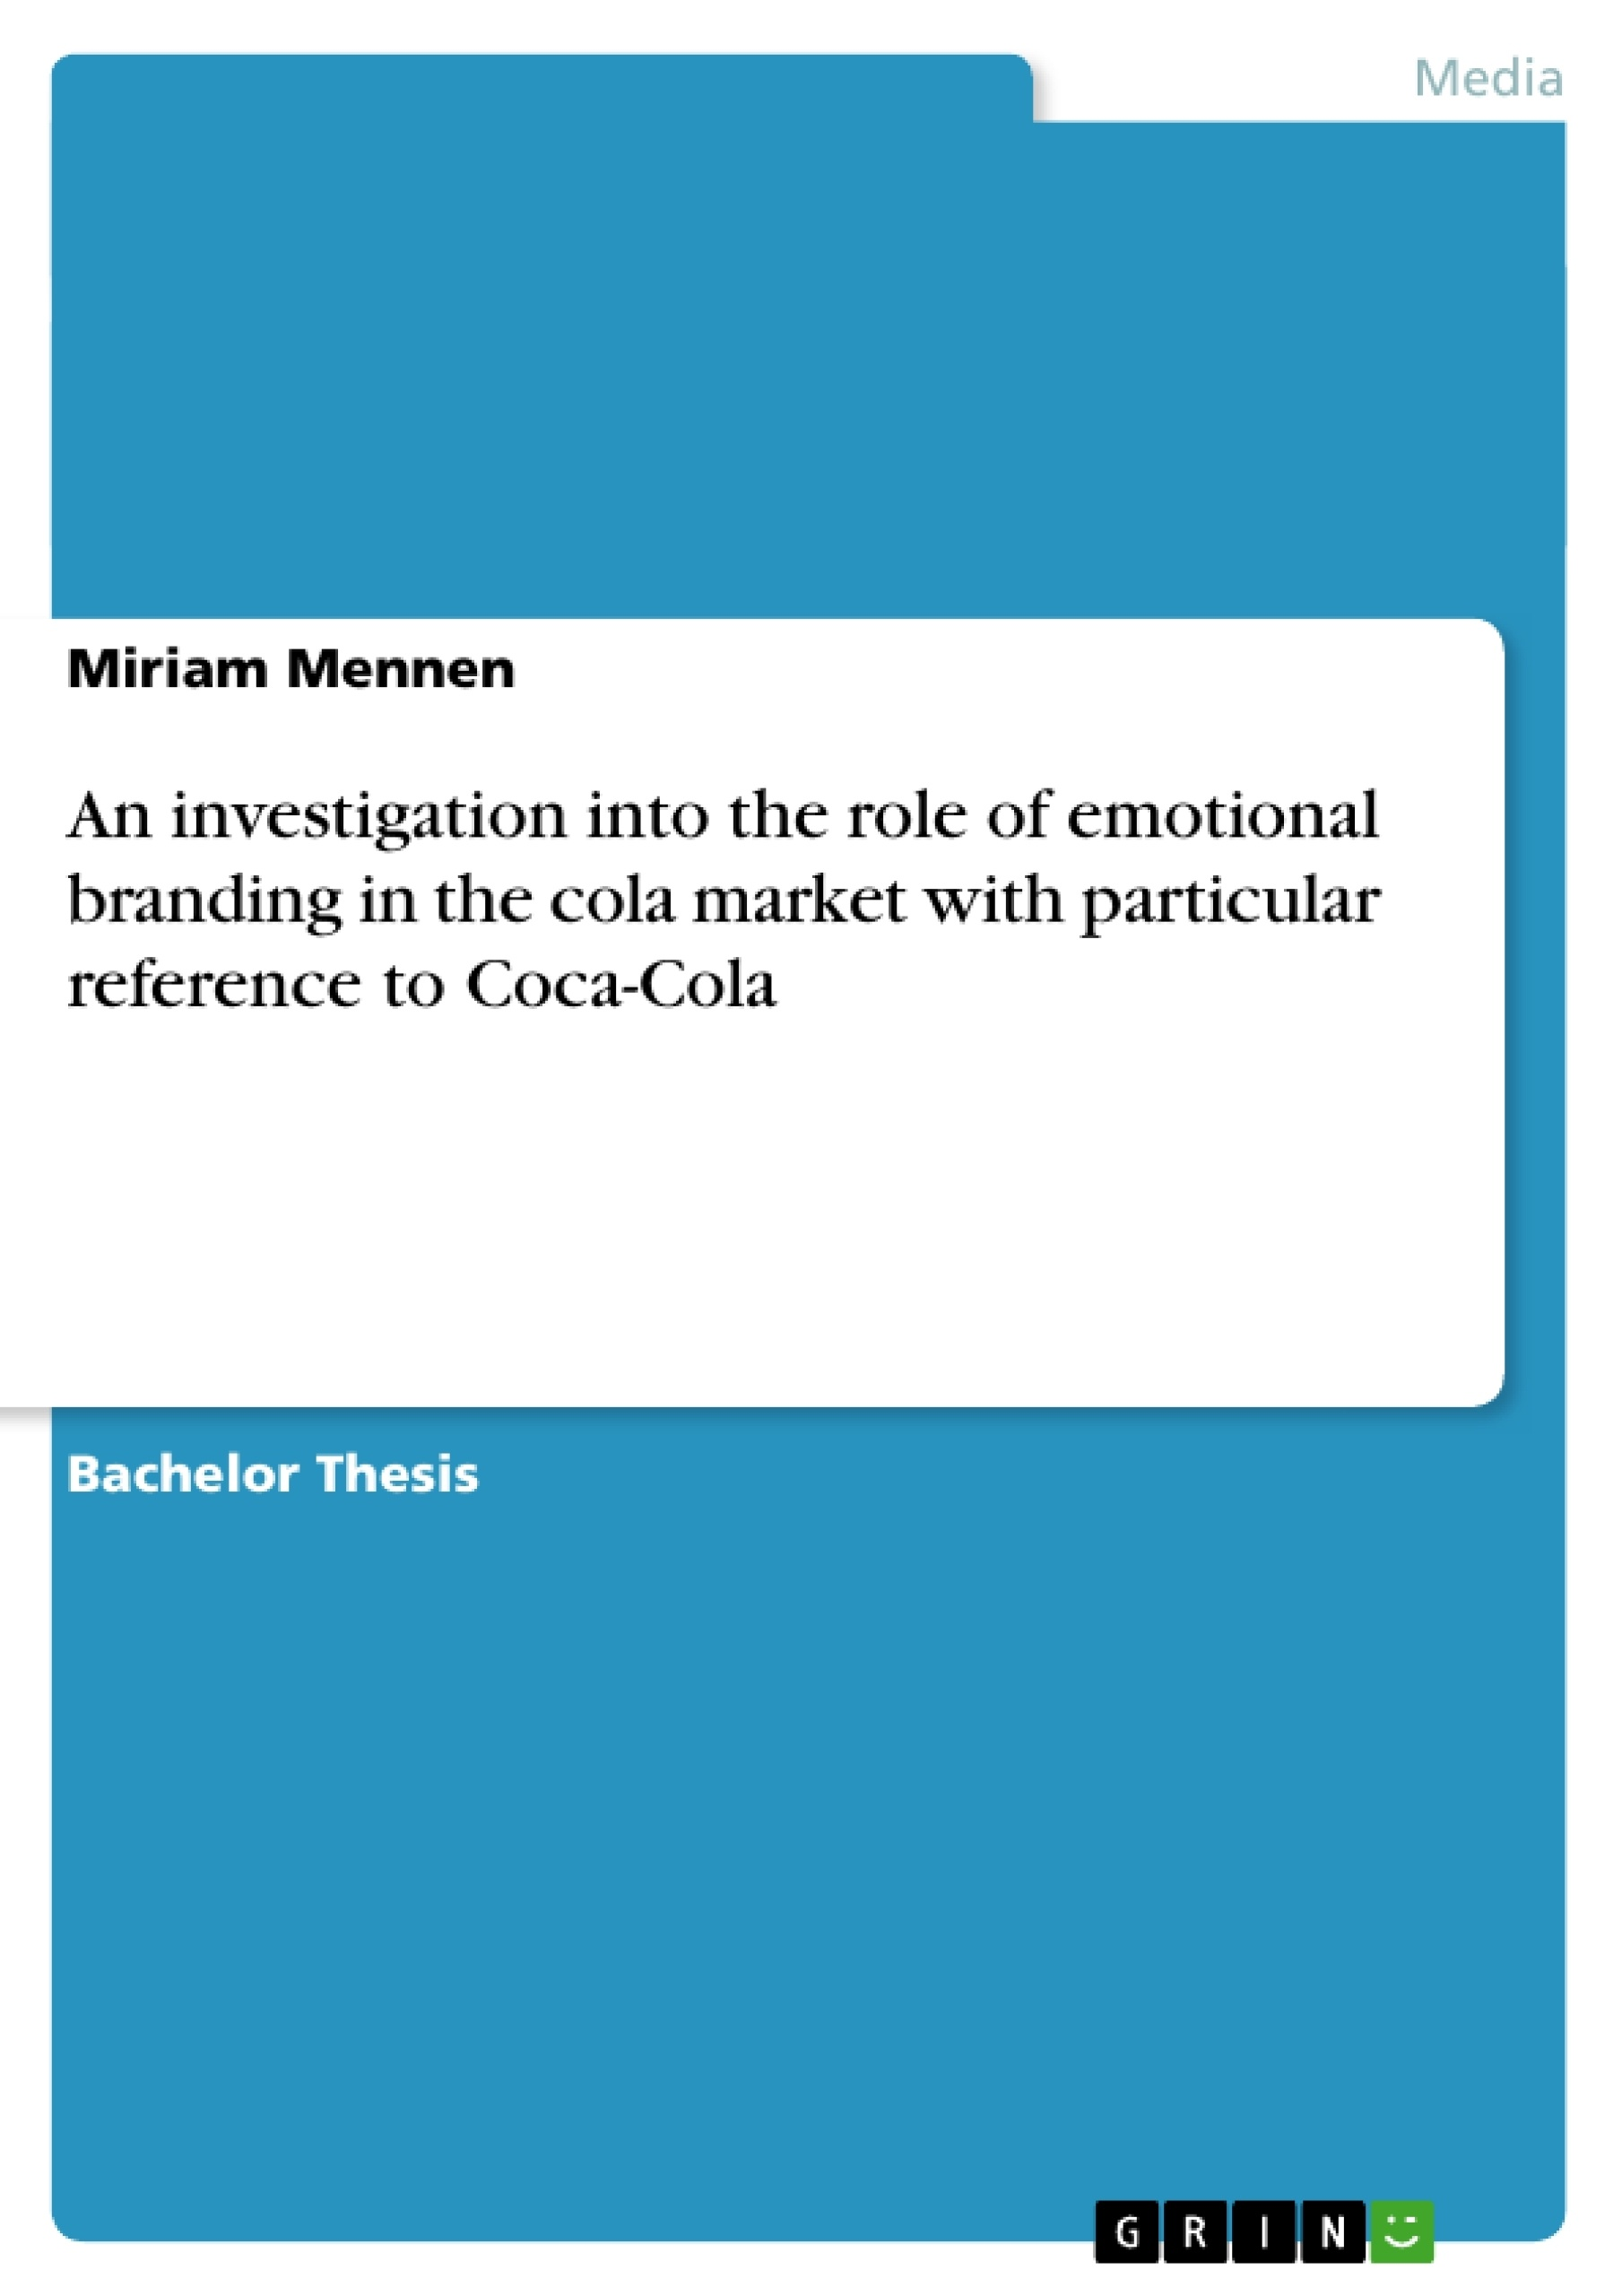 Title: An investigation into the role of emotional branding in the cola market with particular reference to Coca-Cola